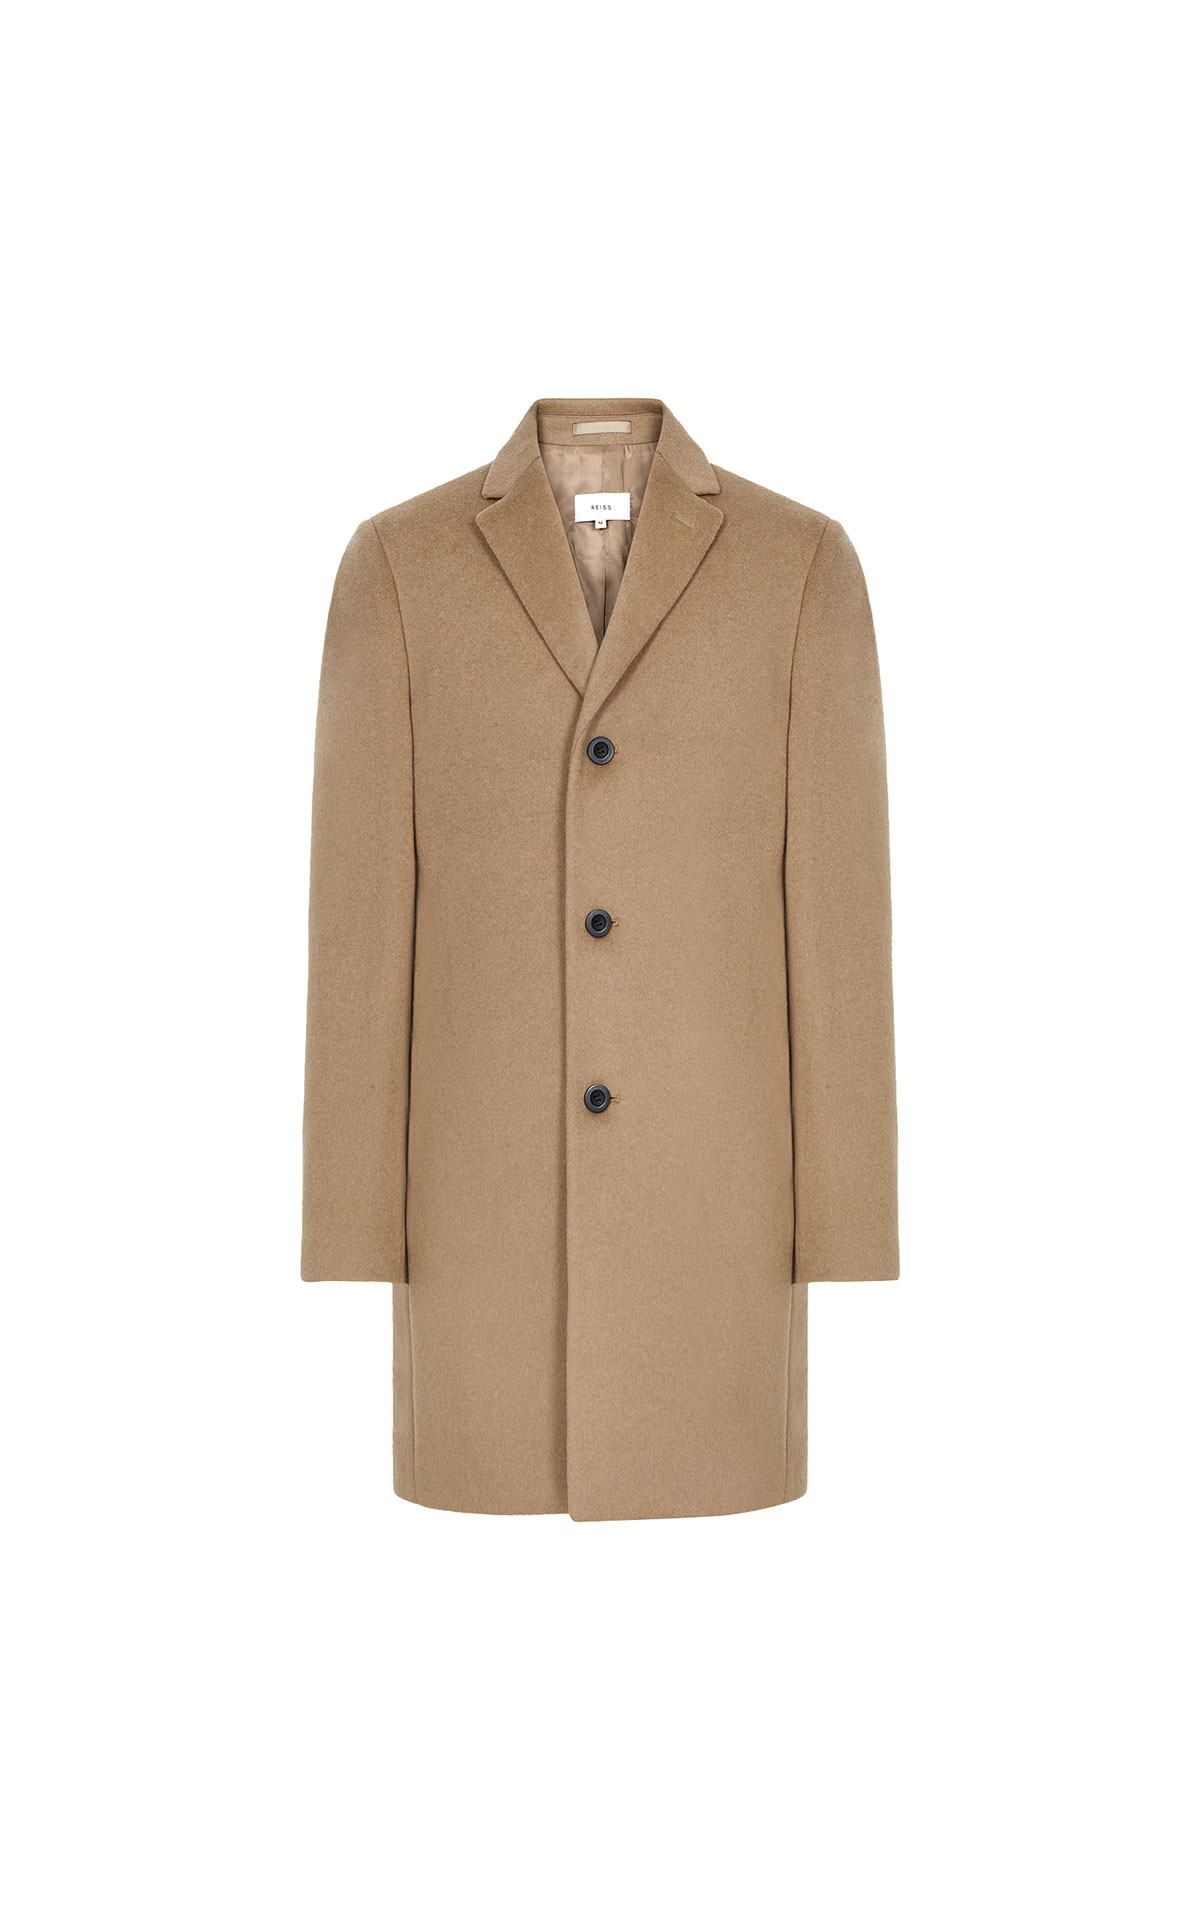 Reiss Gable camel coat from Bicester Village